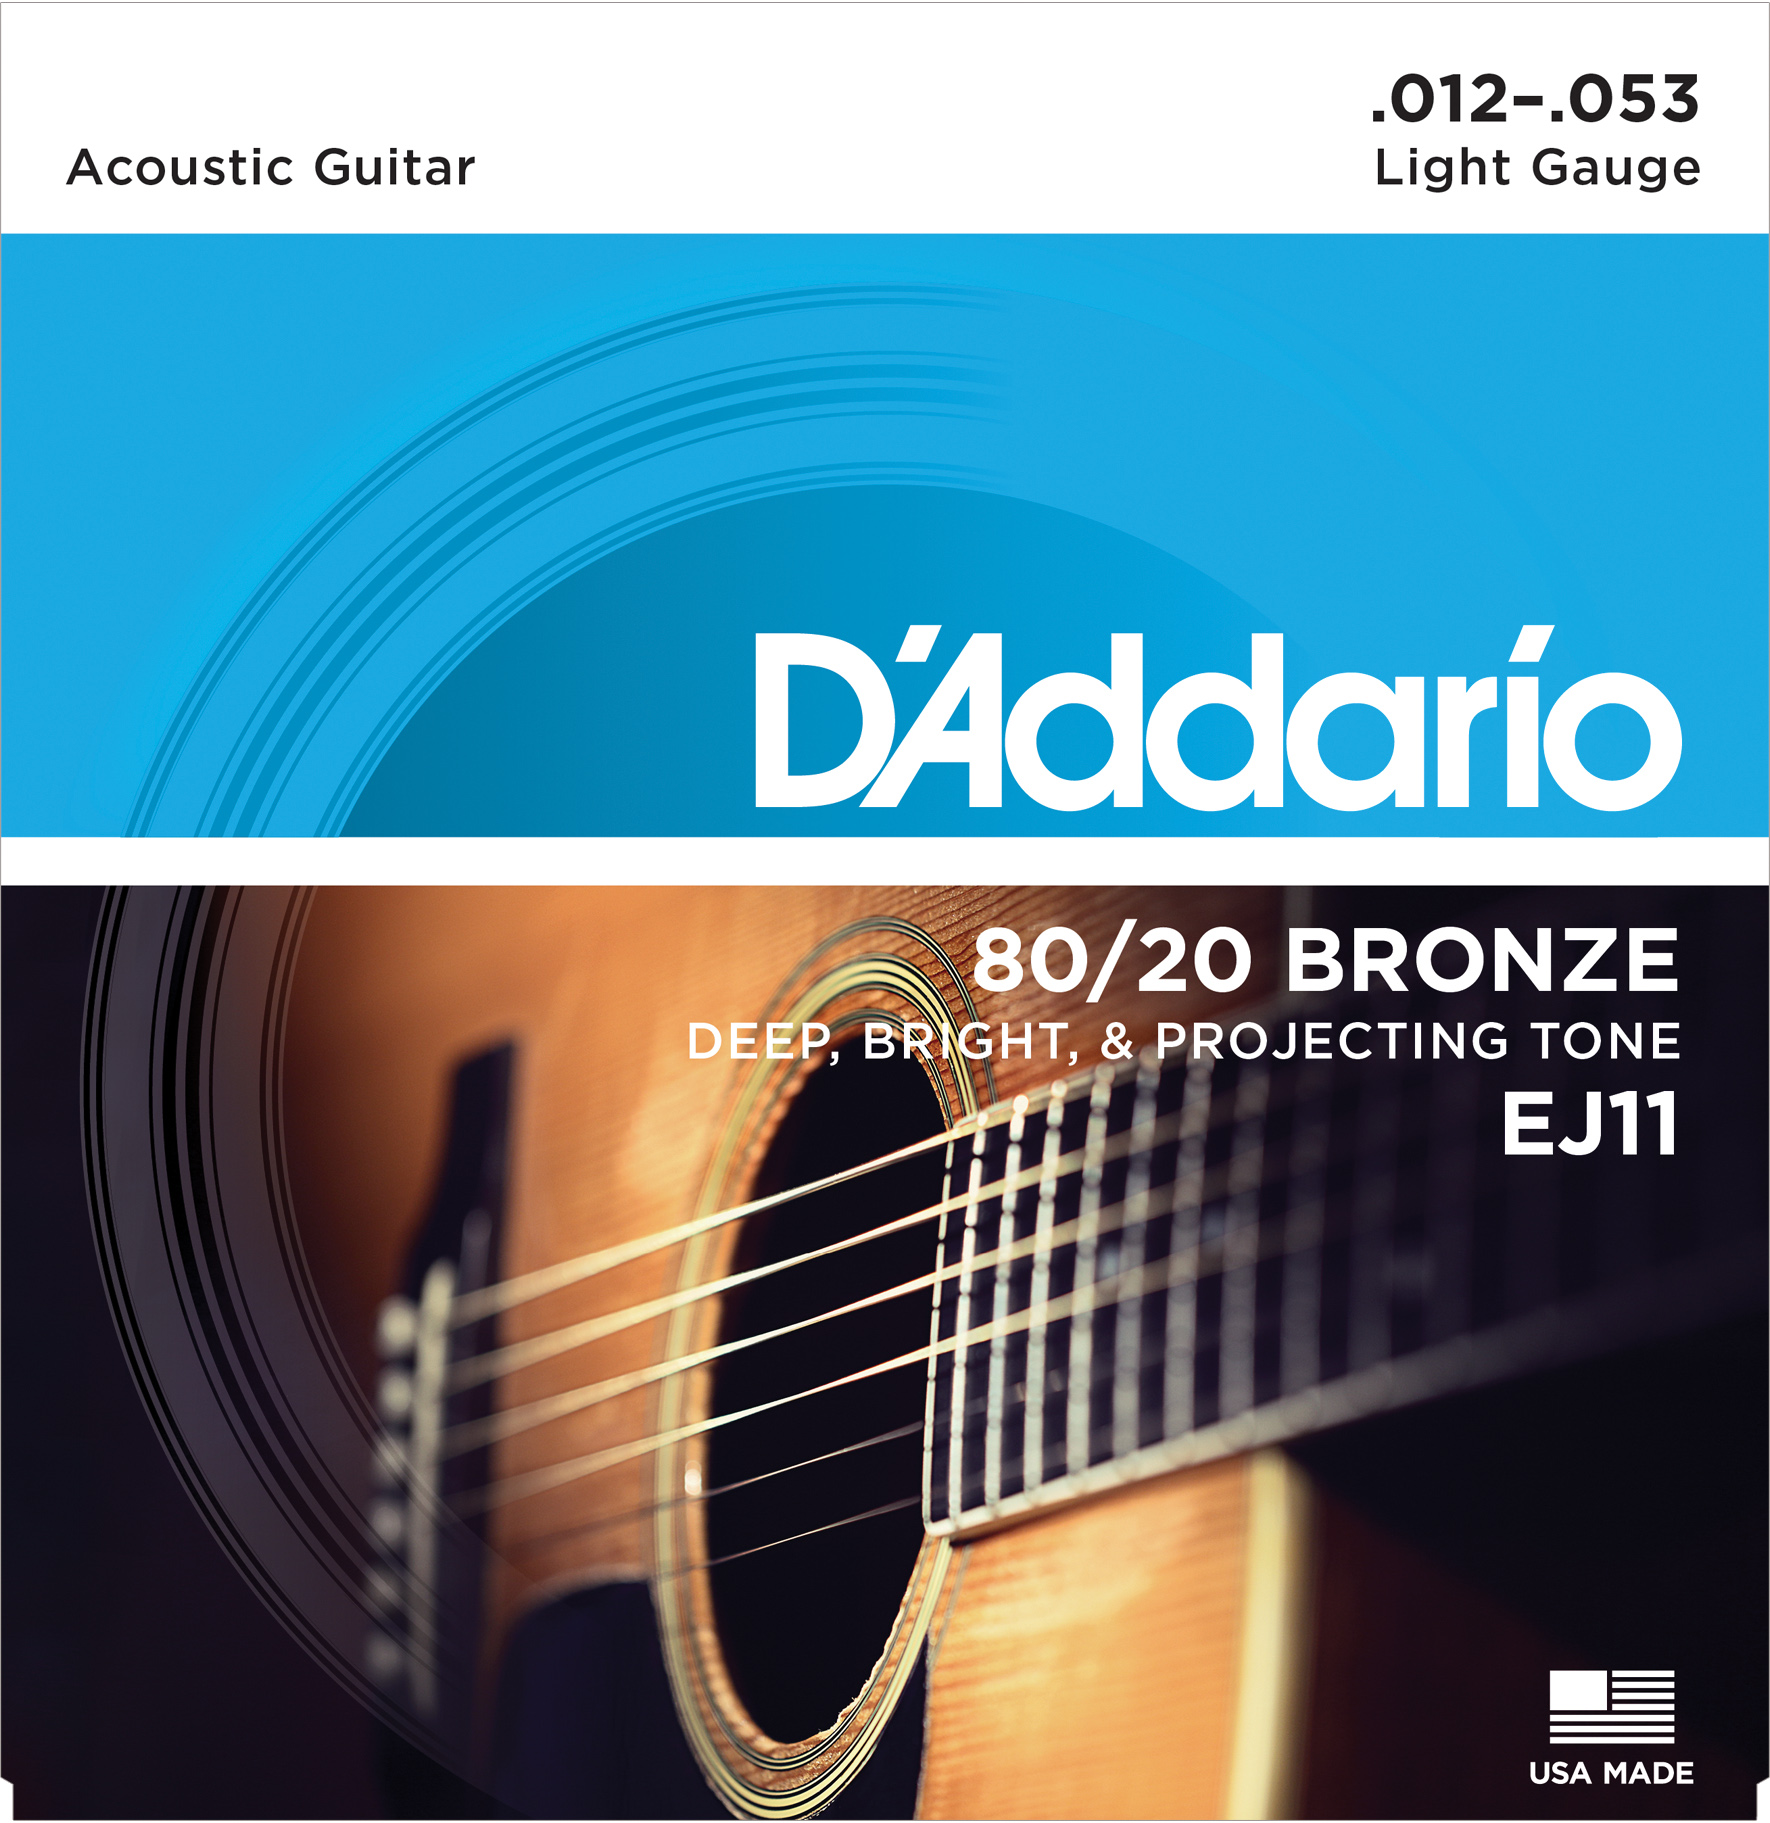 D'Addario 80/20 Bronze Strings